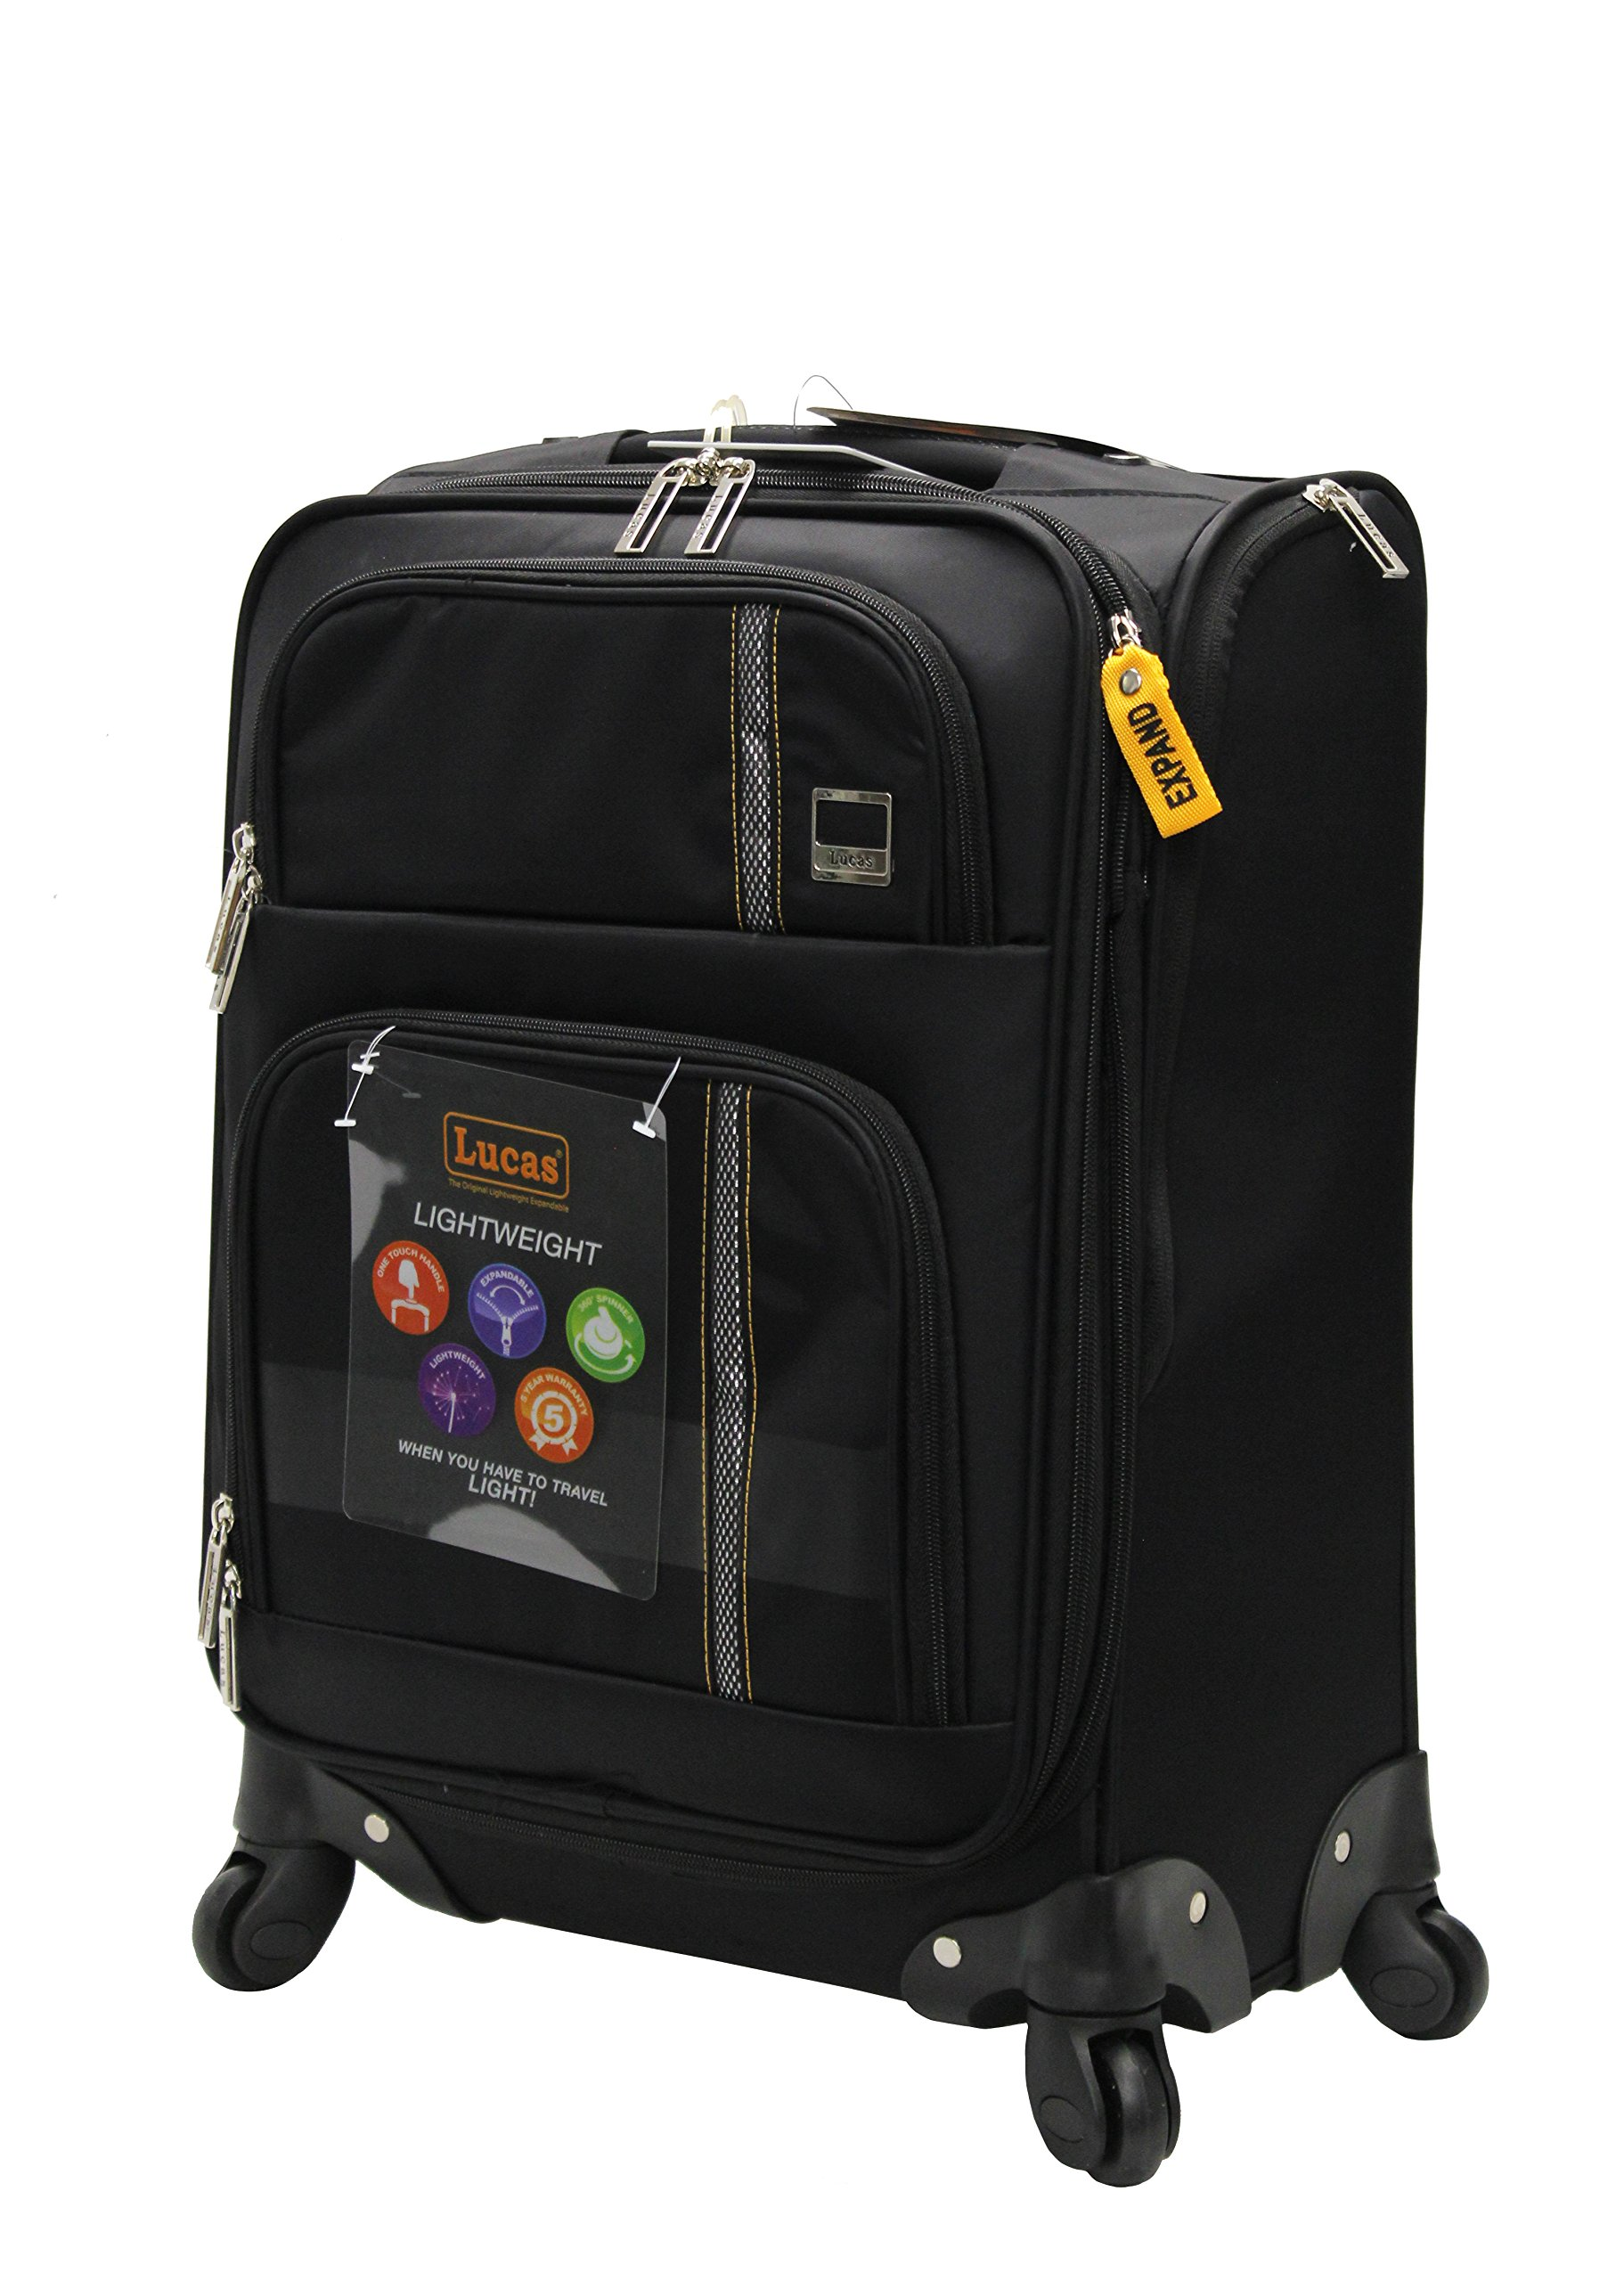 Lucas Luggage Ultra Lightweight Carry On 20 inch Expandable Suitcase With Spinner Wheels (20in, Zone Black)